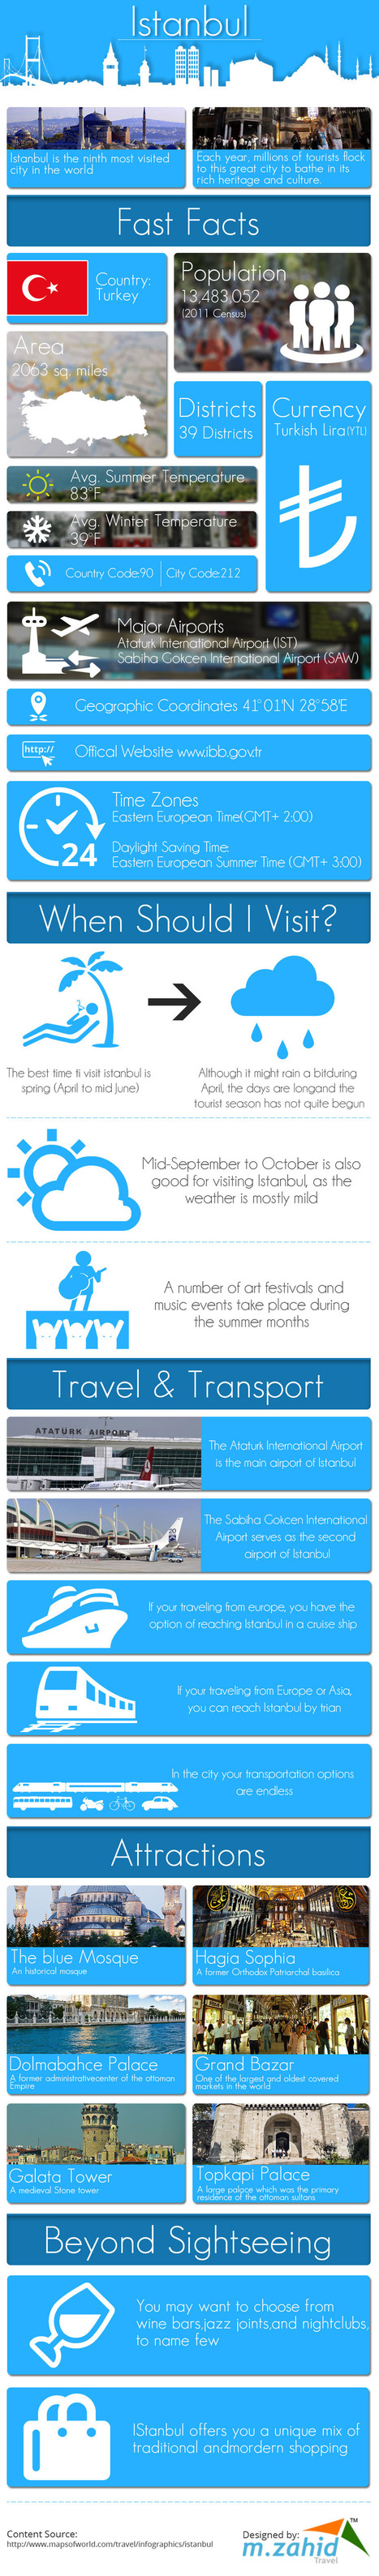 Most Visited City Istanbul - Istanbul Travel Infographic | Travel Tips | Scoop.it